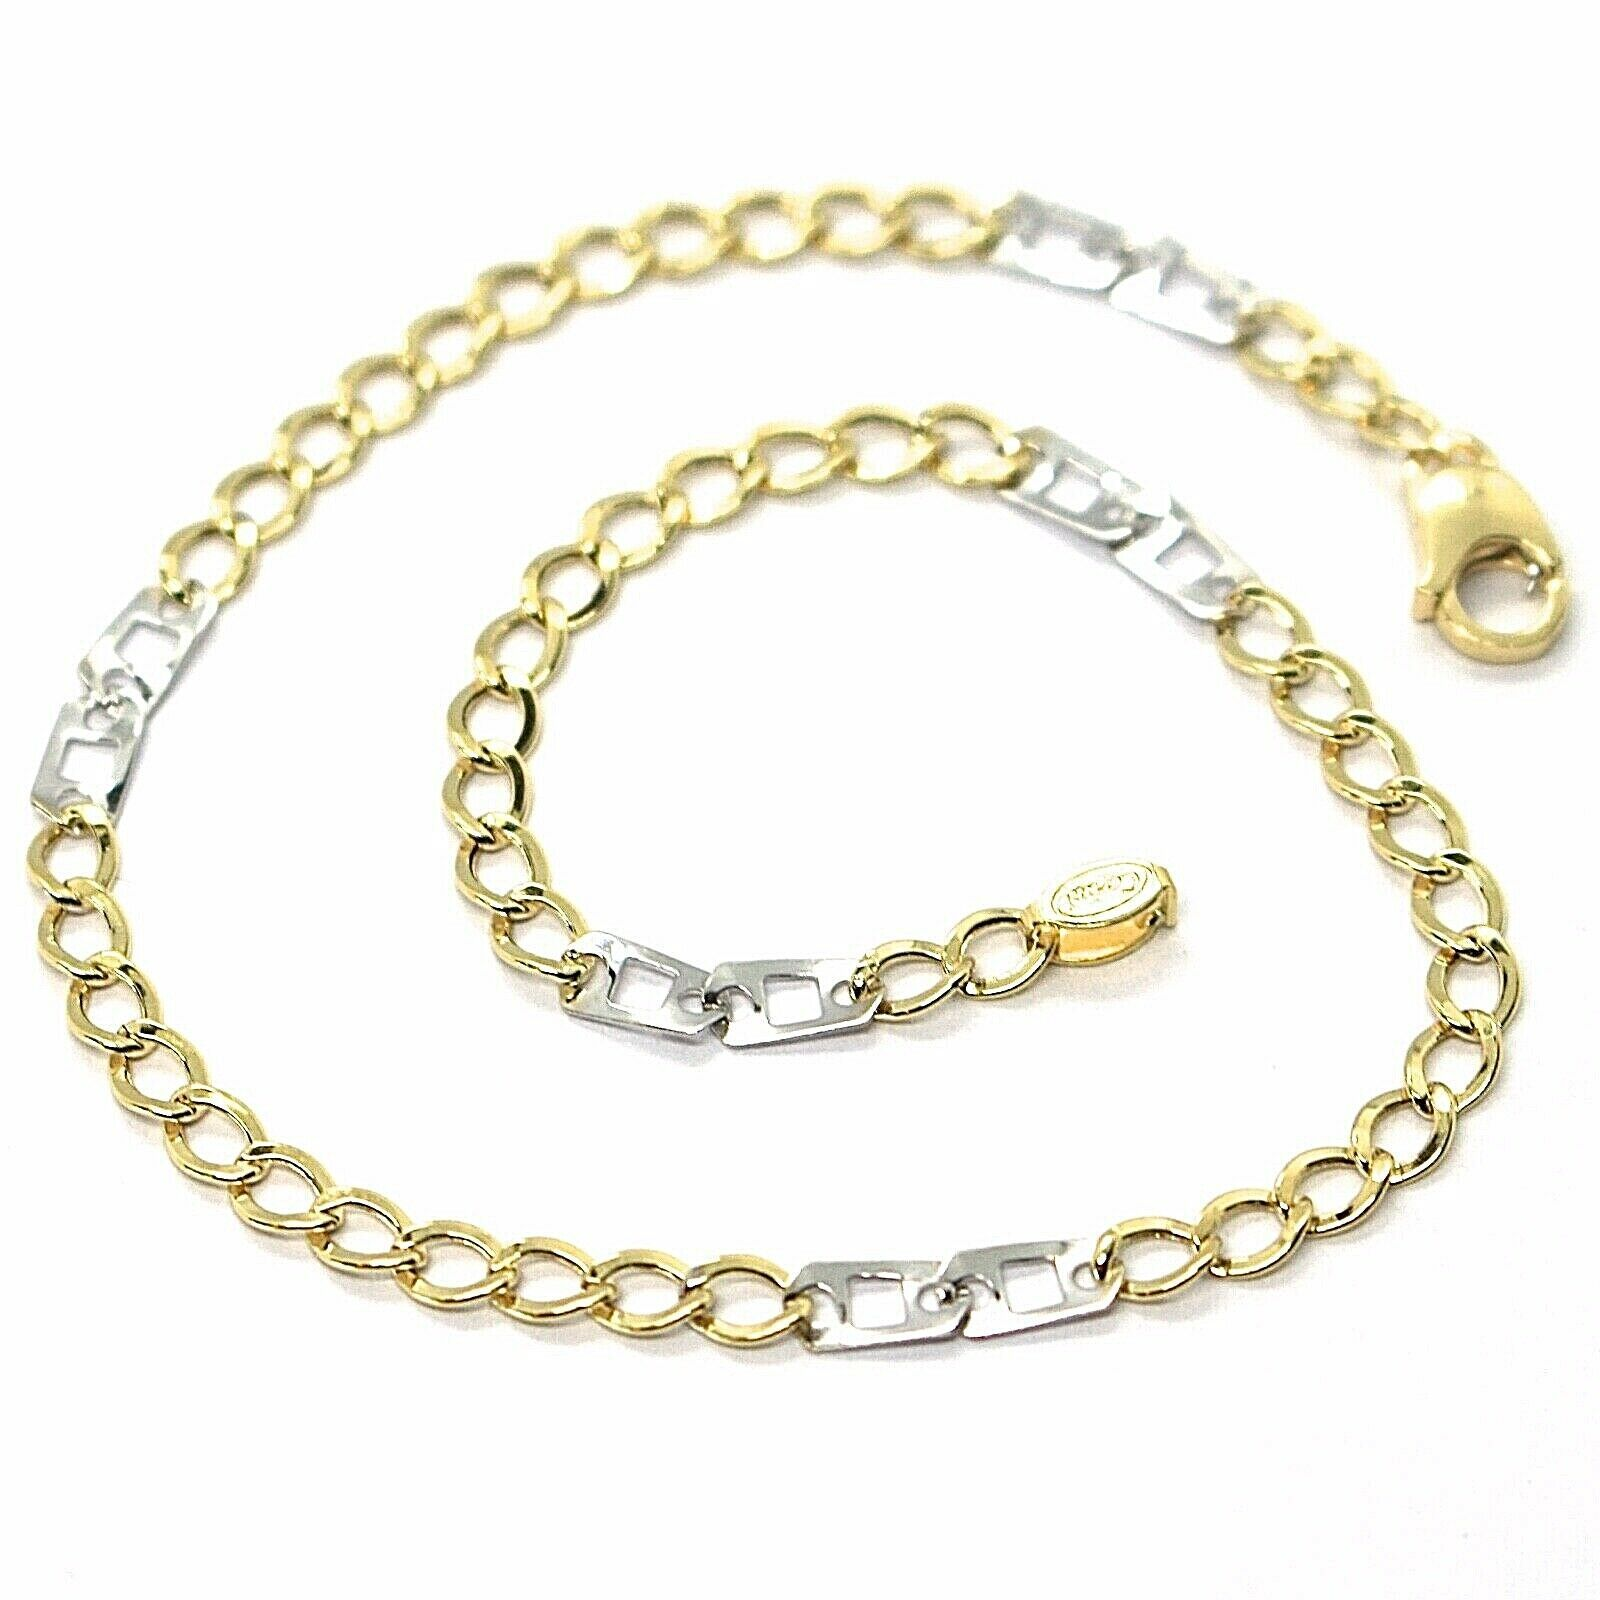 18K YELLOW WHITE GOLD BRACELET 3 MM, 7.9 INCHES, ALTERNATE GOURMETTE AND SQUARE